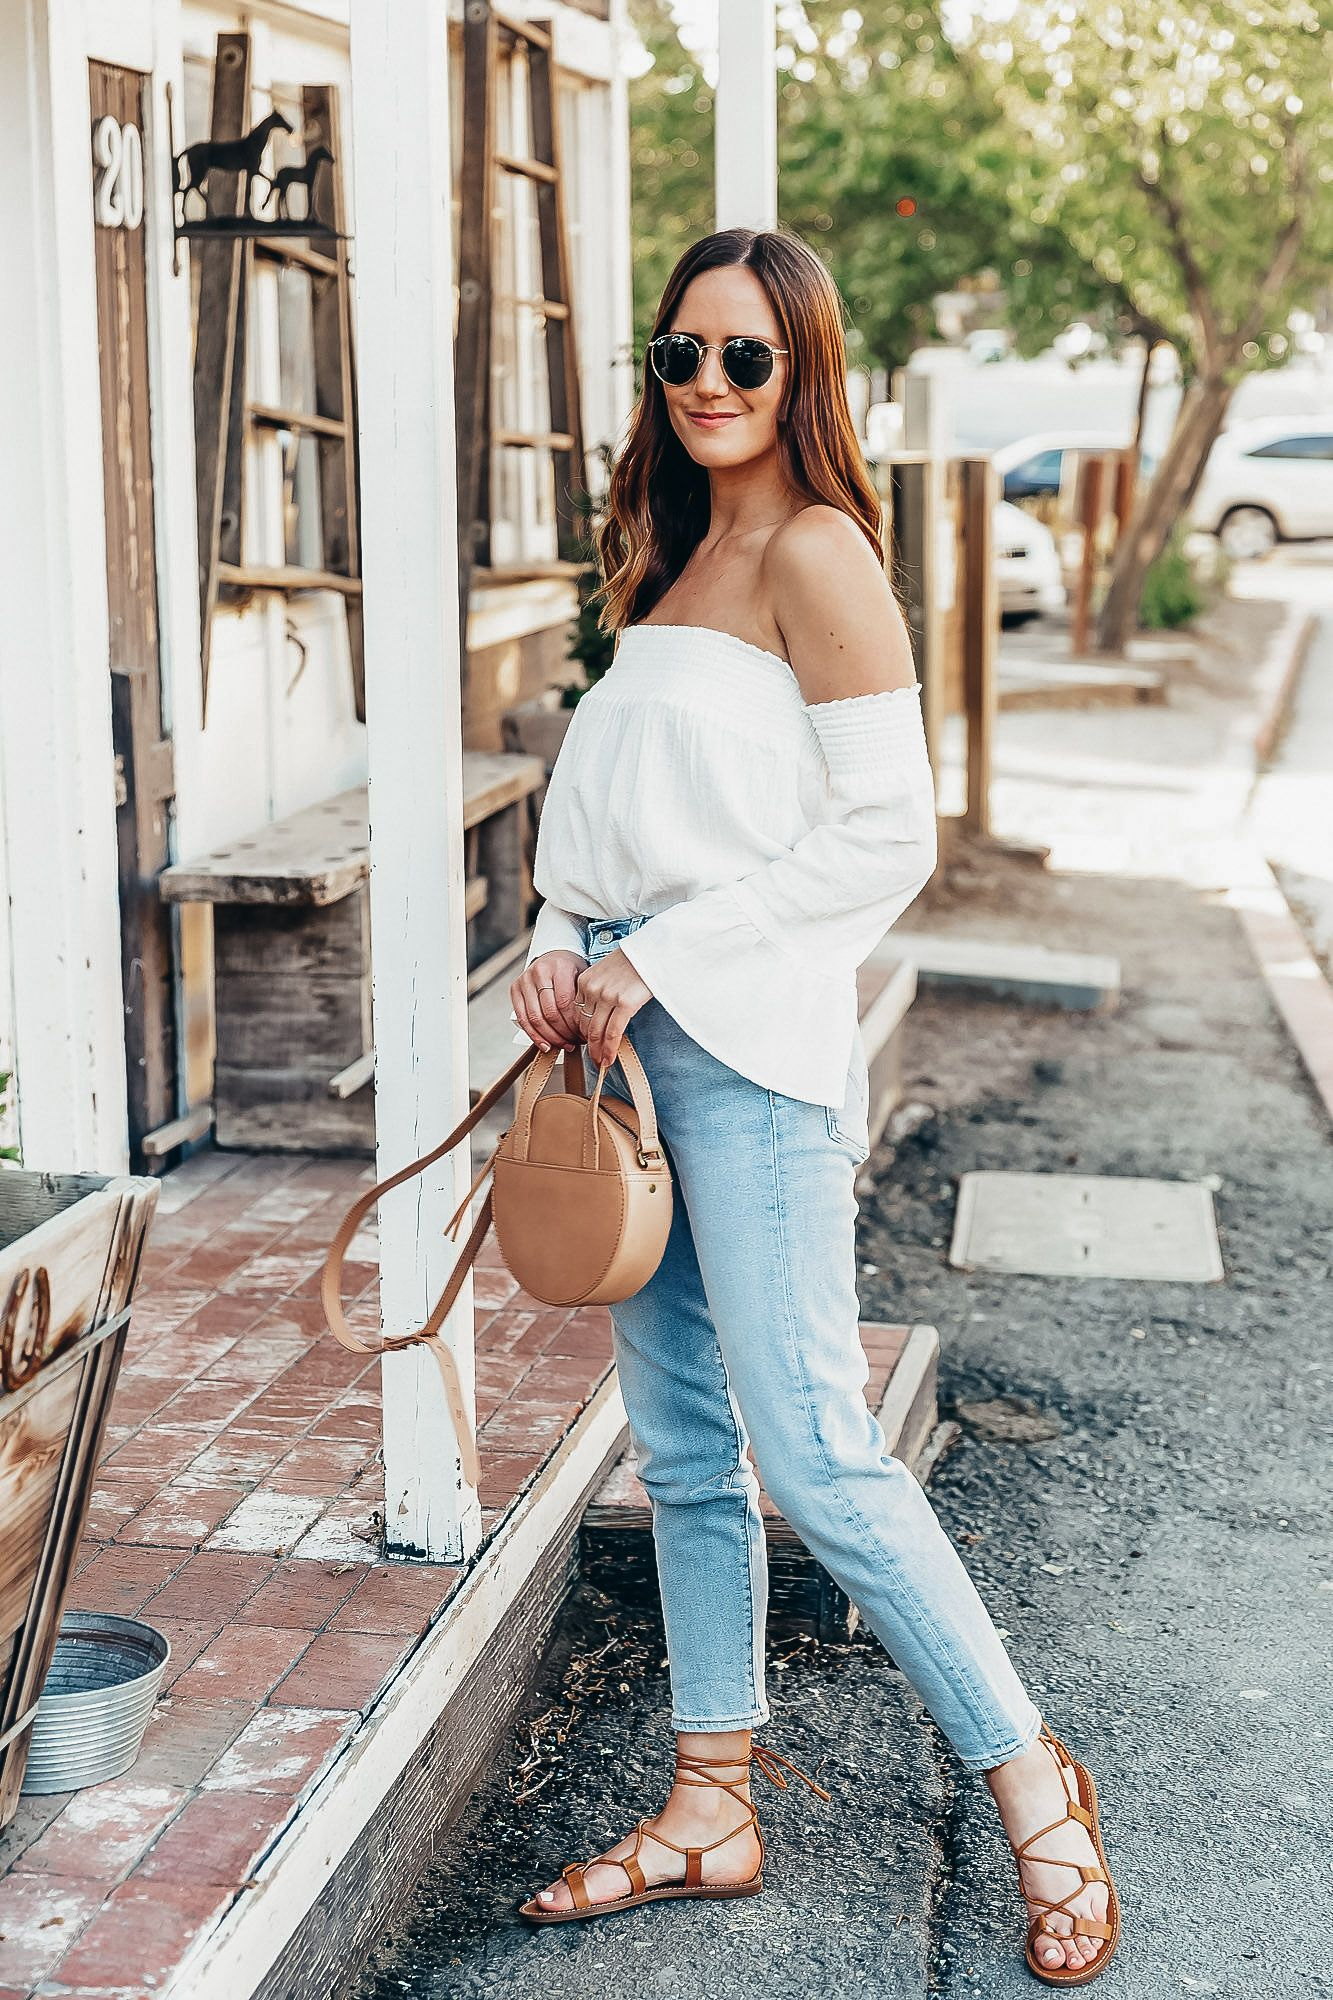 Summer Denim White Cotton Top And Lace Up Sandals White Off The